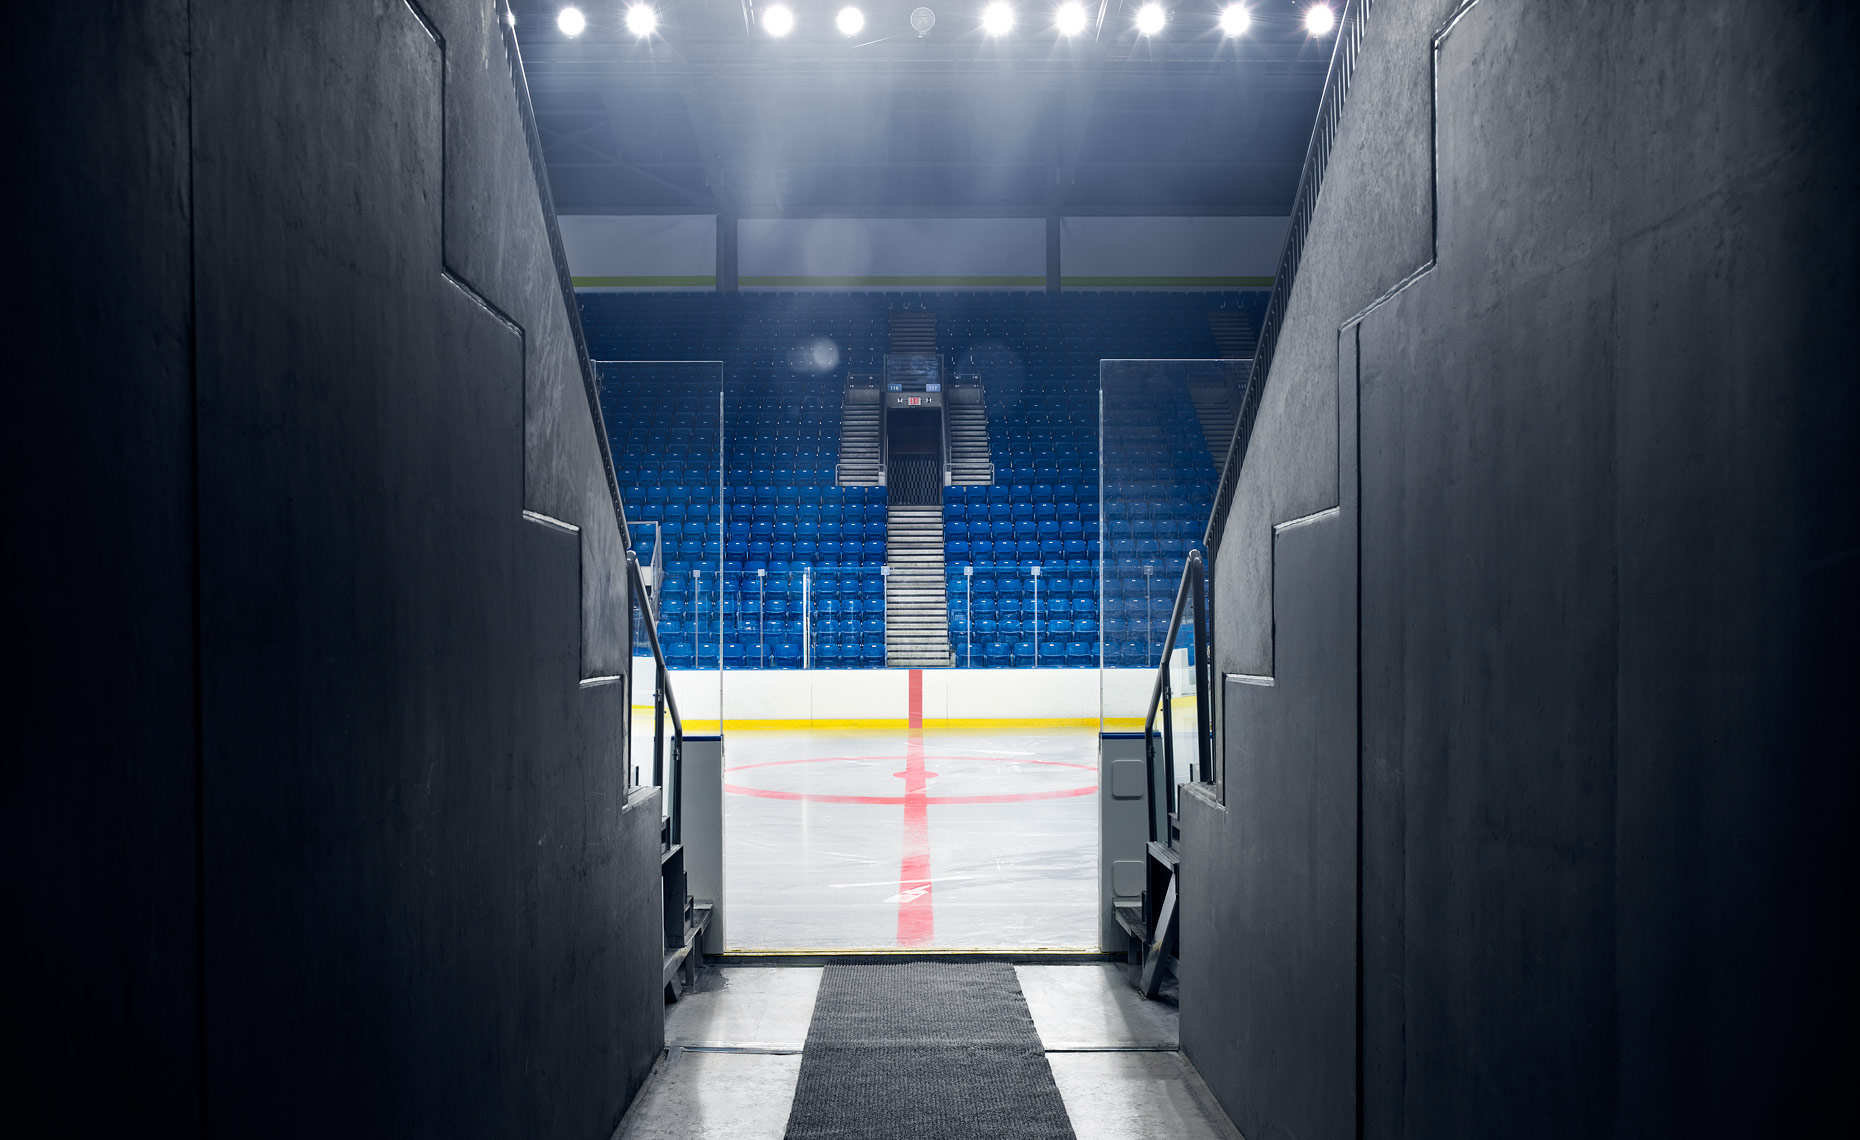 UBC Ice Hockey Rink